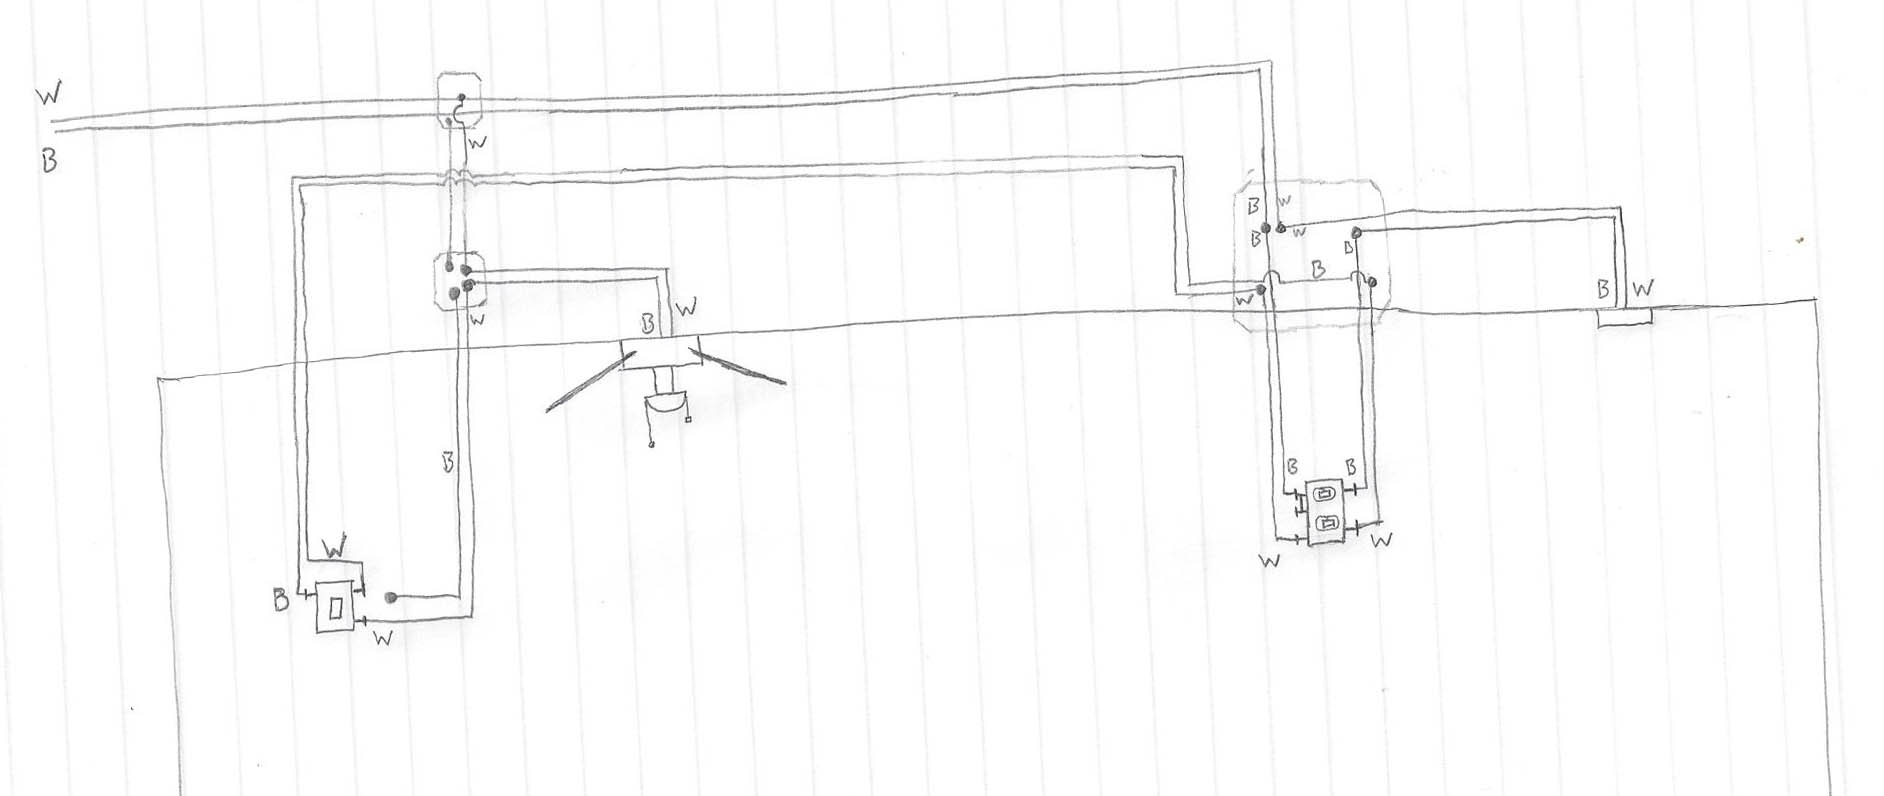 3 Pole Switch Diagram